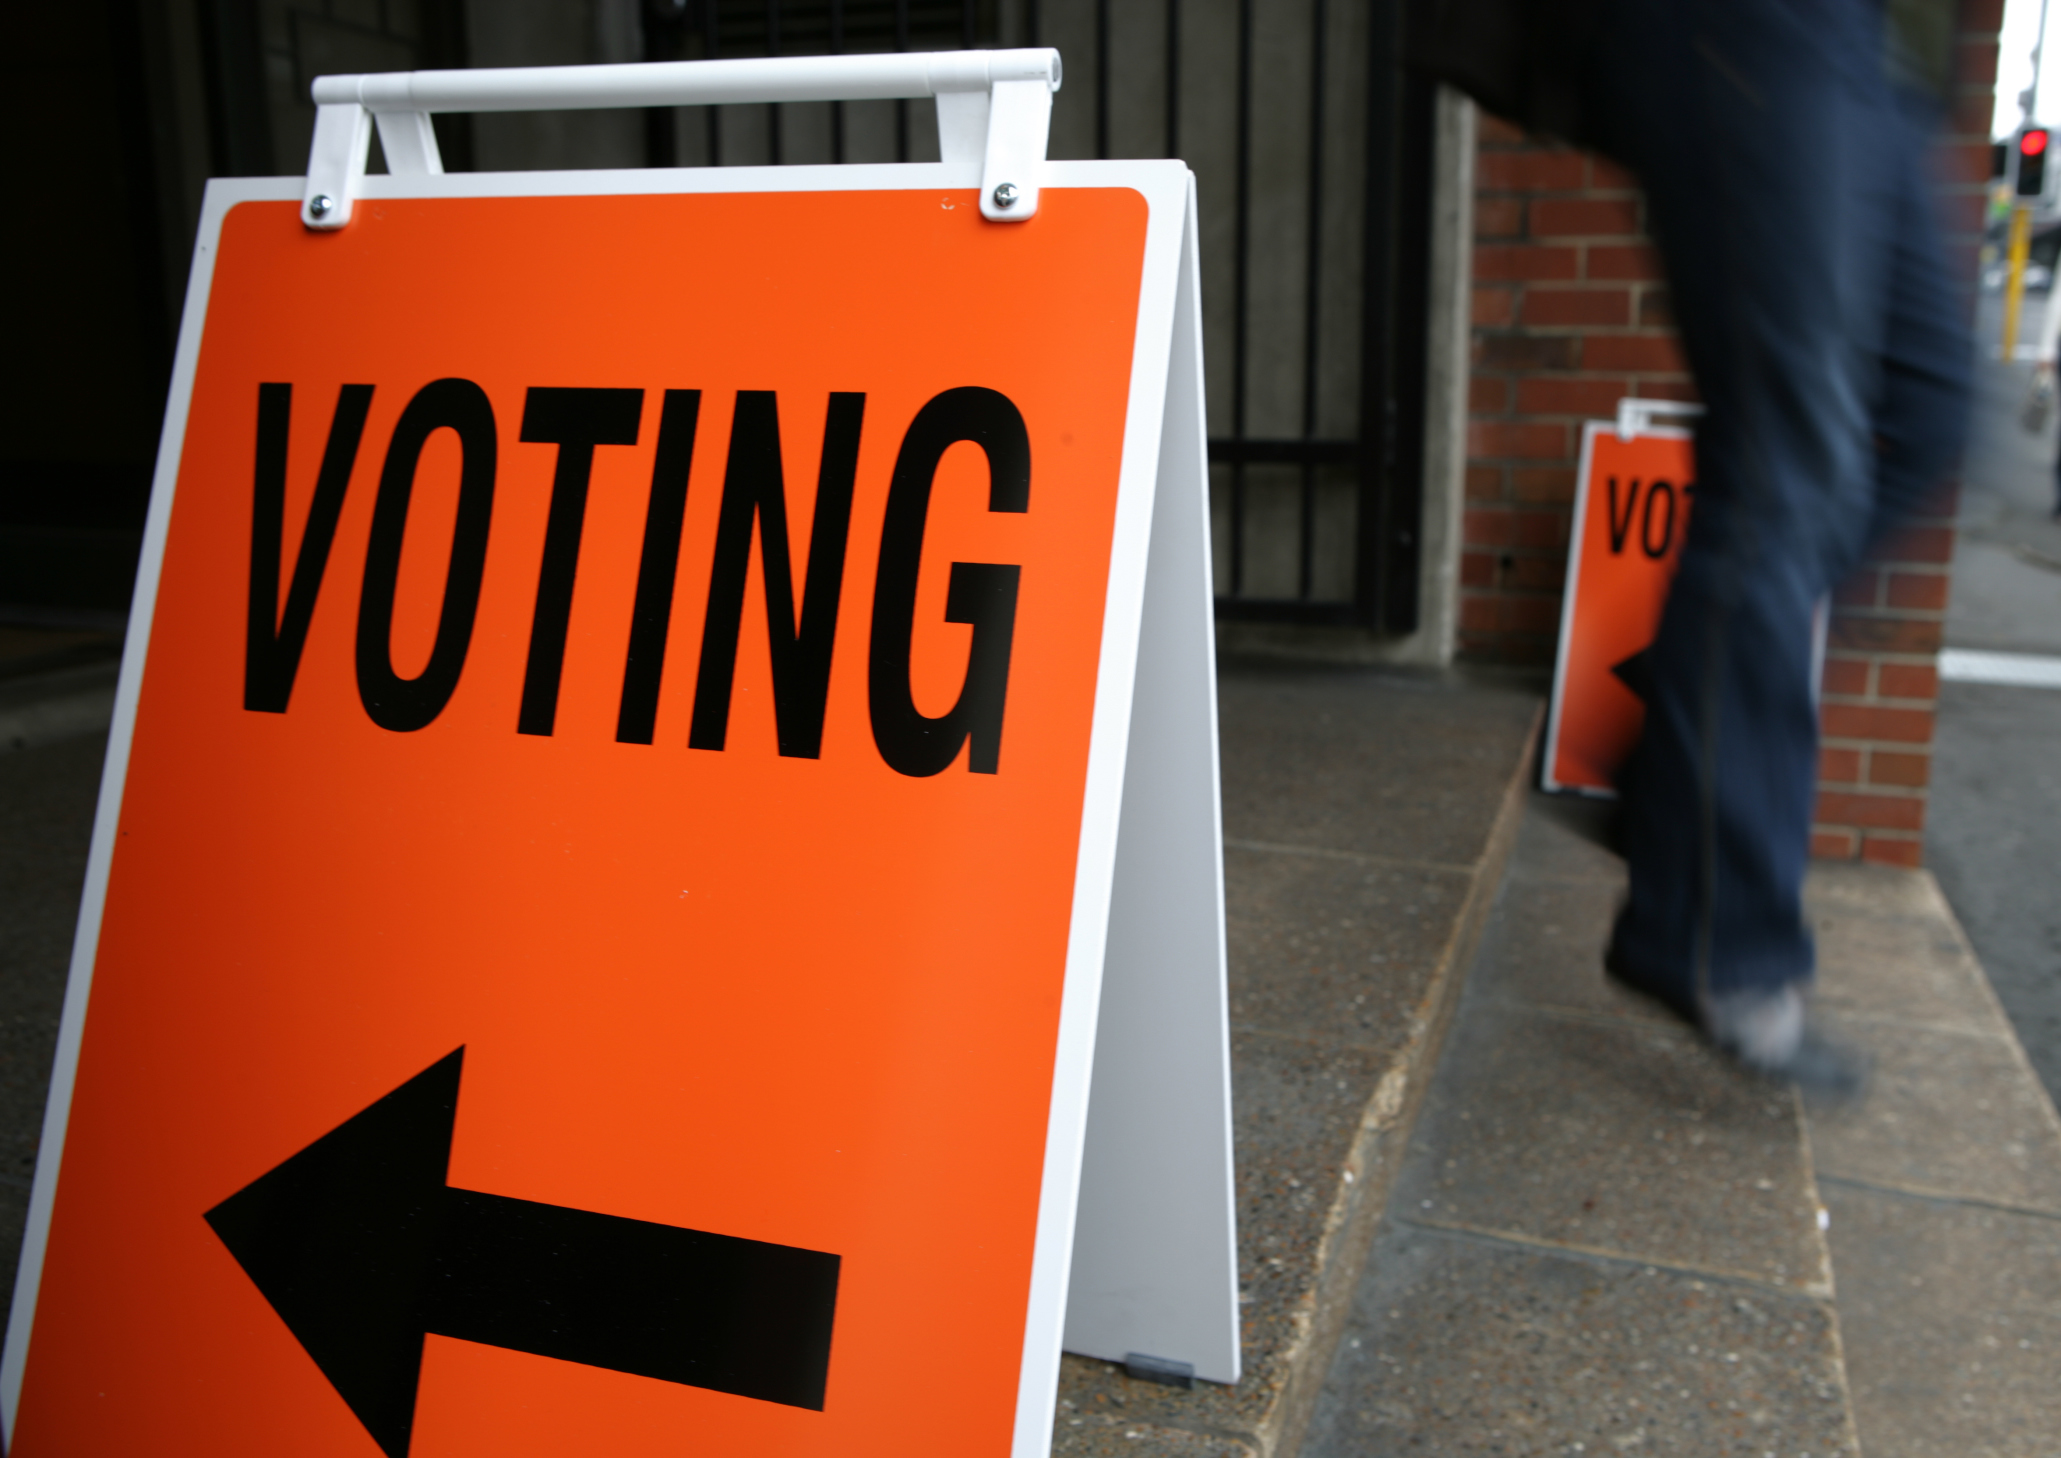 Hundreds more Northern Va. voters assigned to wrong district, review finds